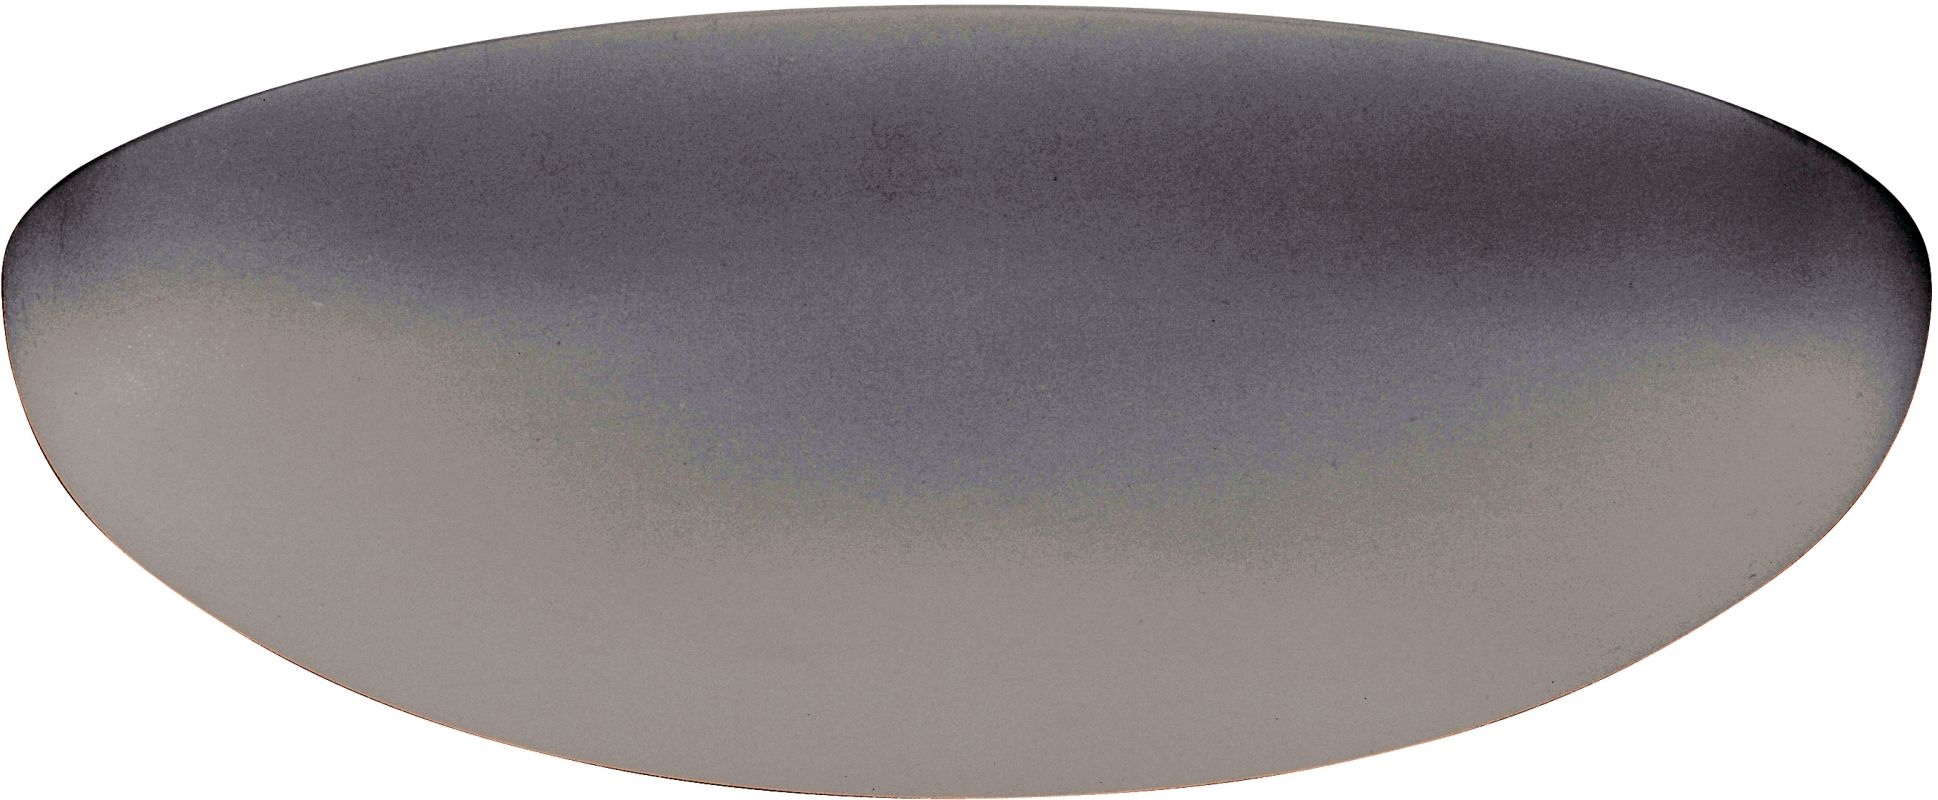 """Lithonia Lighting DFMR14 M6 14"""" Round Diffuser for Low Profile"""